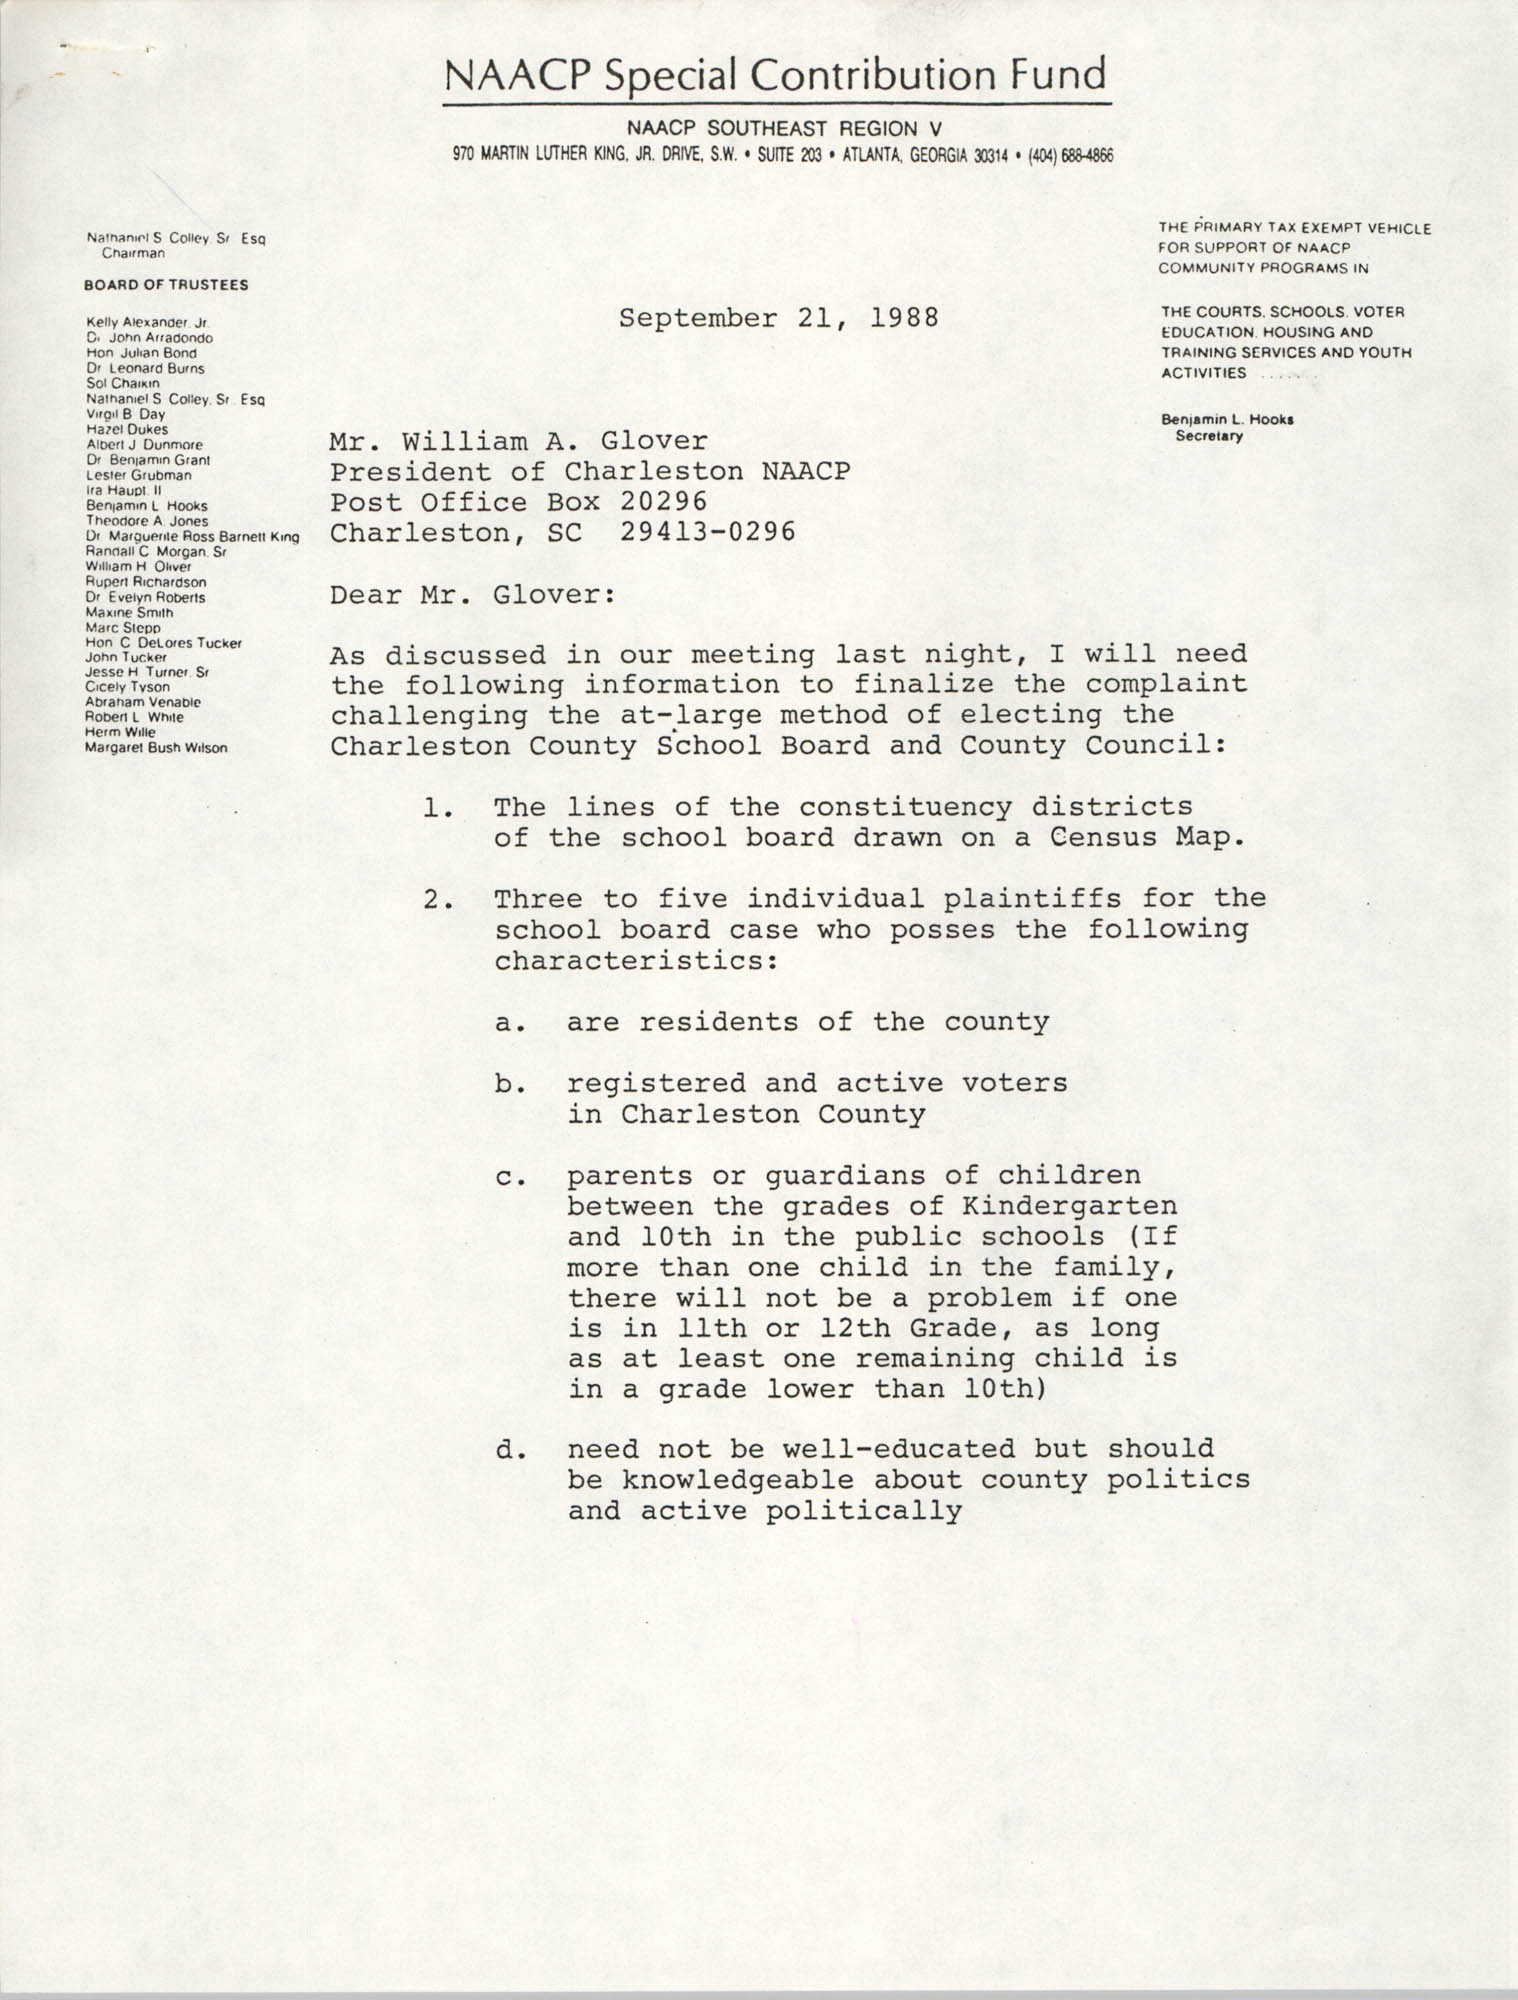 Letter  from Paula E. Bonds to William A. Glover, September 21, 1988